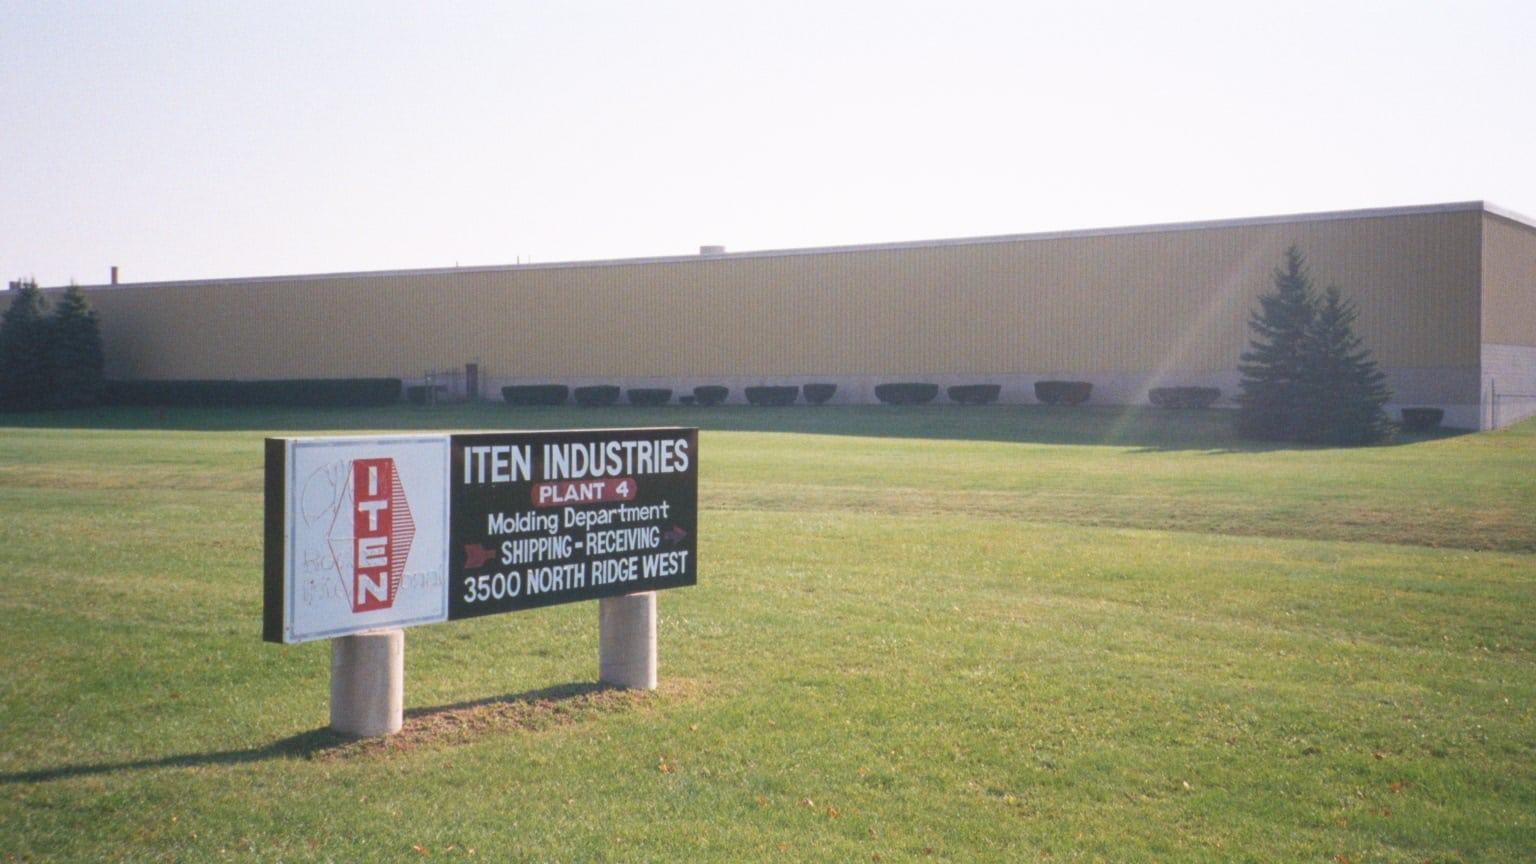 Iten Industries building sign